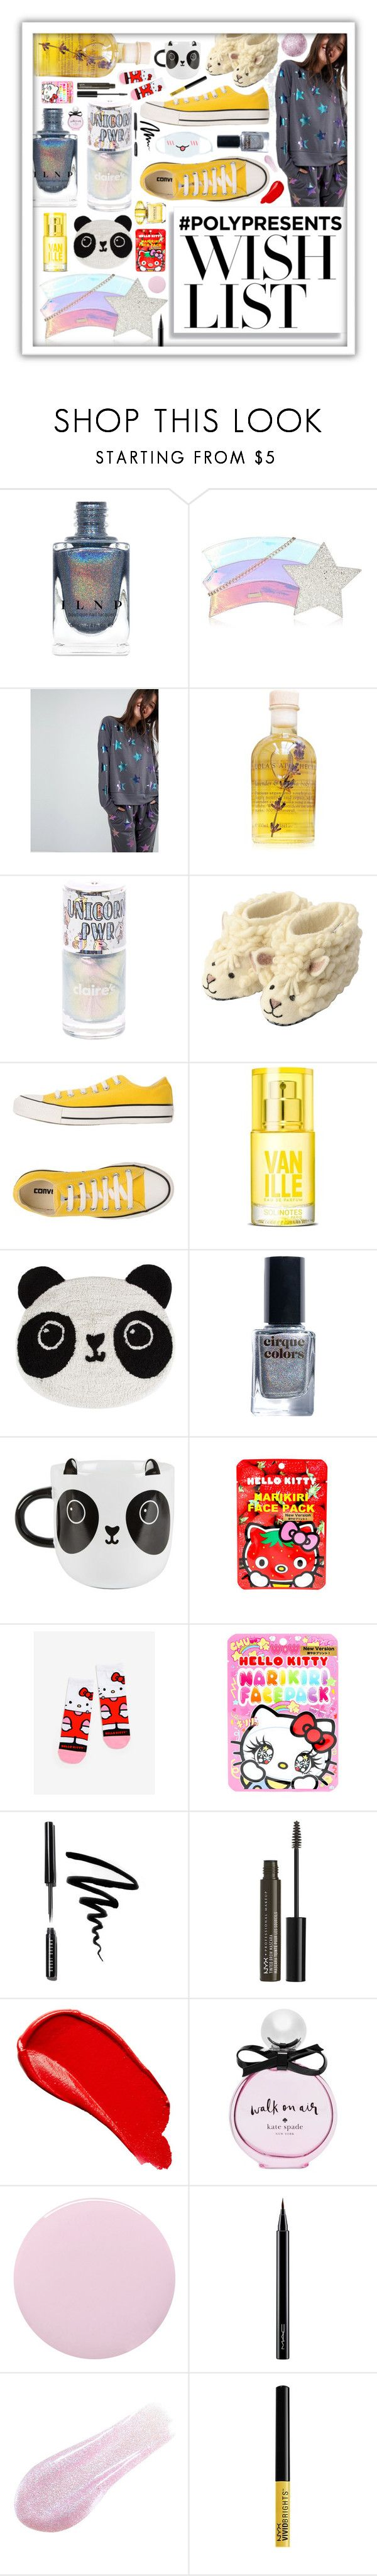 """#PolyPresents: Wish List"" by beanpod ❤ liked on Polyvore featuring ASOS, Lola's Apothecary, Sew Heart Felt, Converse, Sass & Belle, Cirque Colors, Hello Kitty, cutekawaii, Bobbi Brown Cosmetics and NYX"